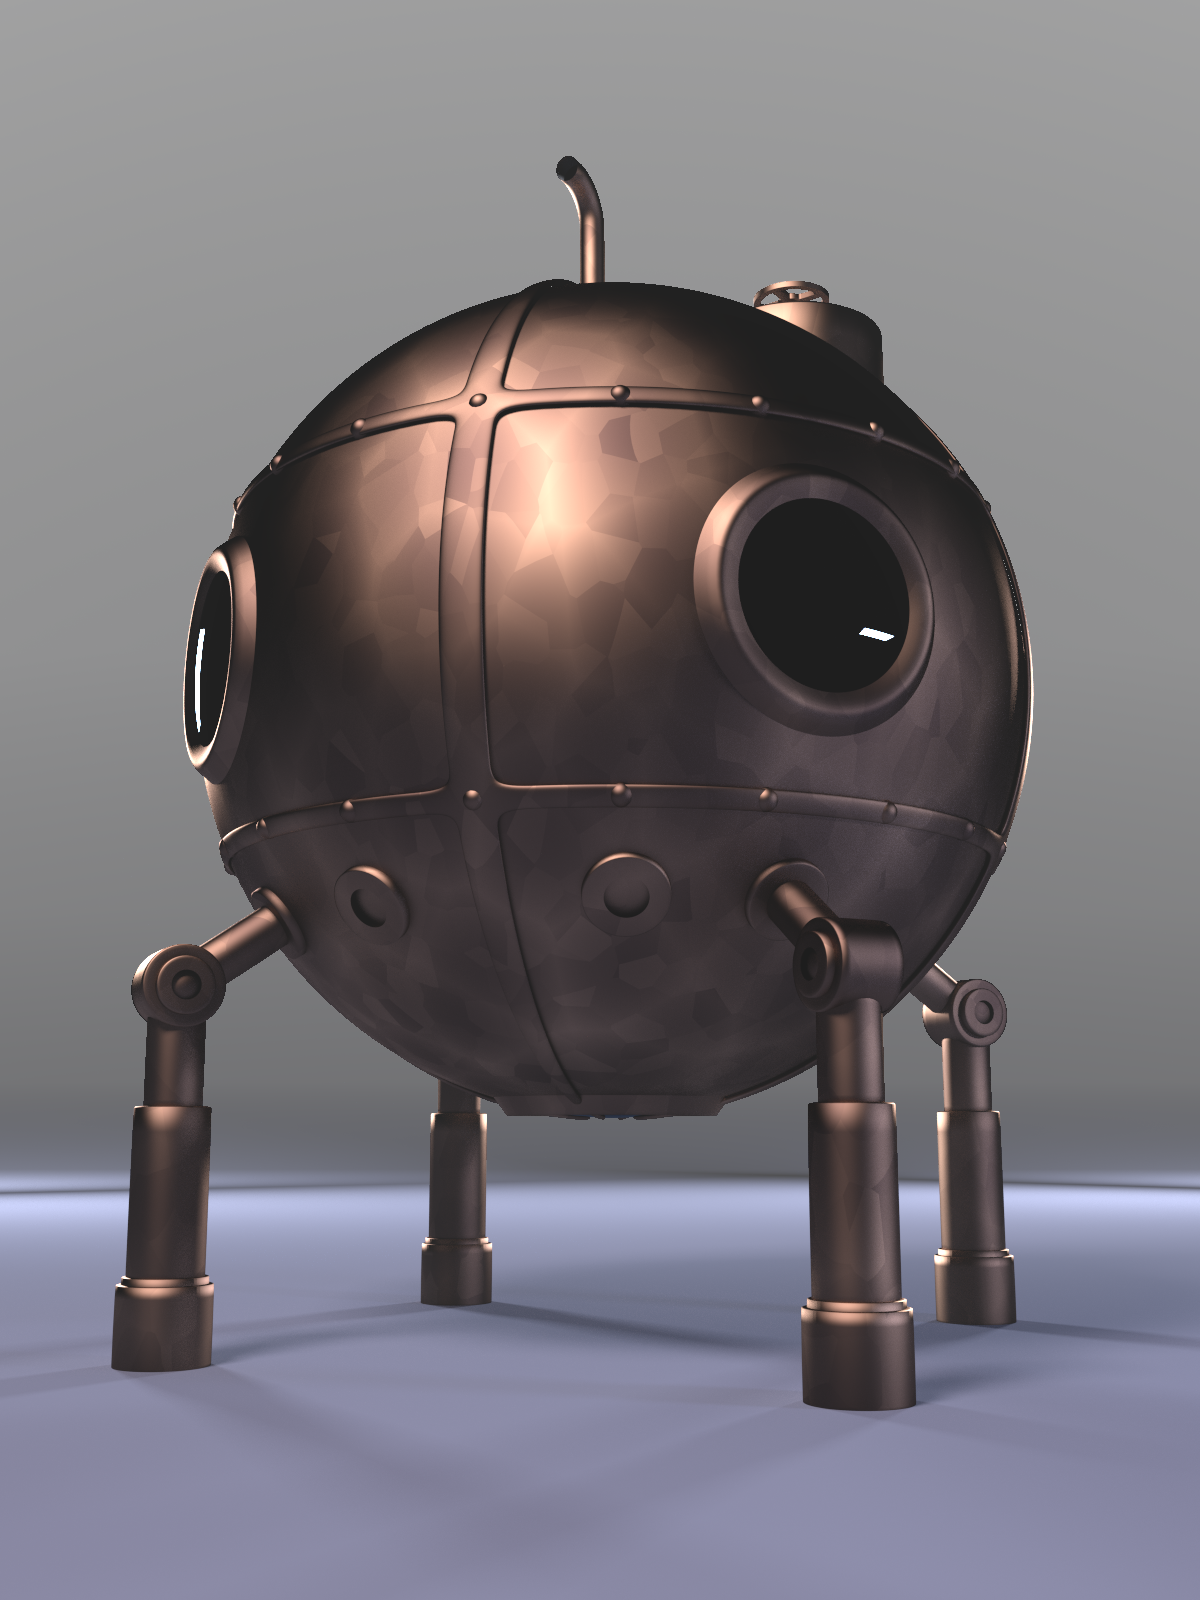 3D Model Steampunk Bathysphere by on